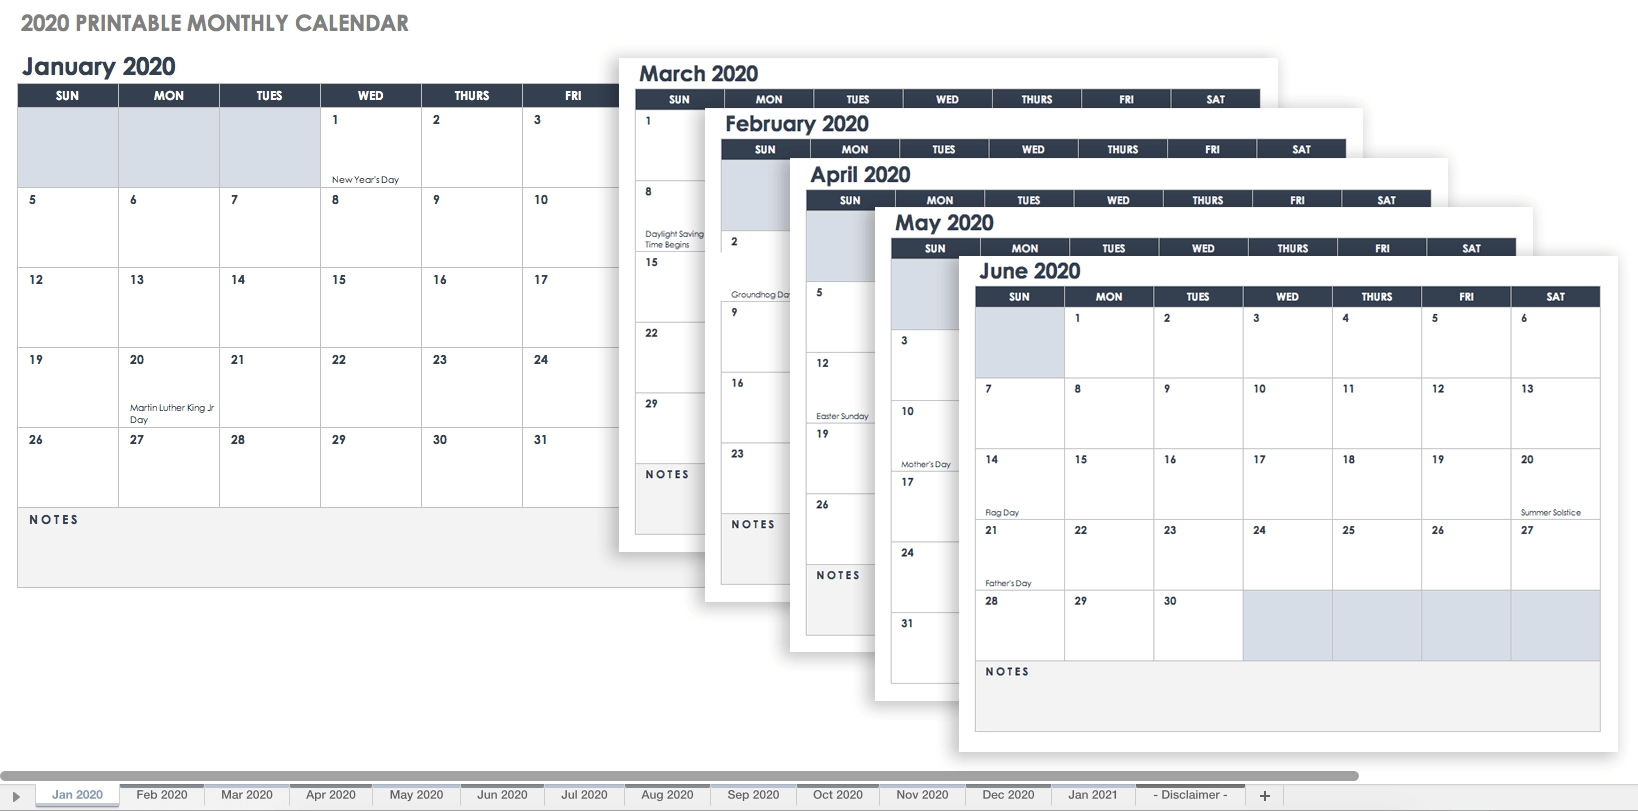 15 Free Monthly Calendar Templates | Smartsheet regarding Sample Monthly Calendars To Printable With Notes